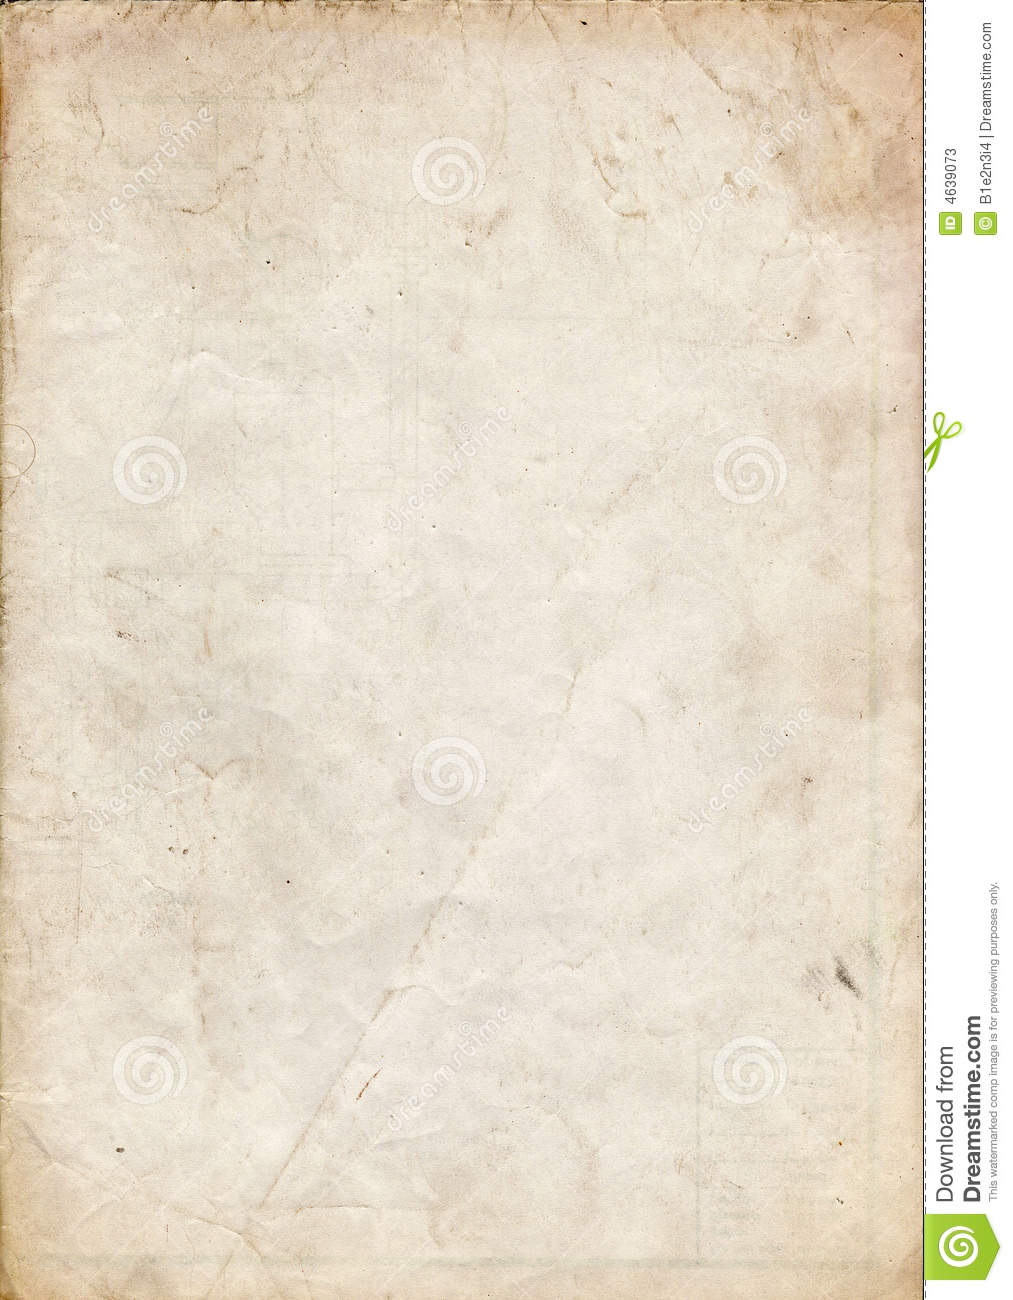 Old Paper Texture Stock Photos - Image: 4639073